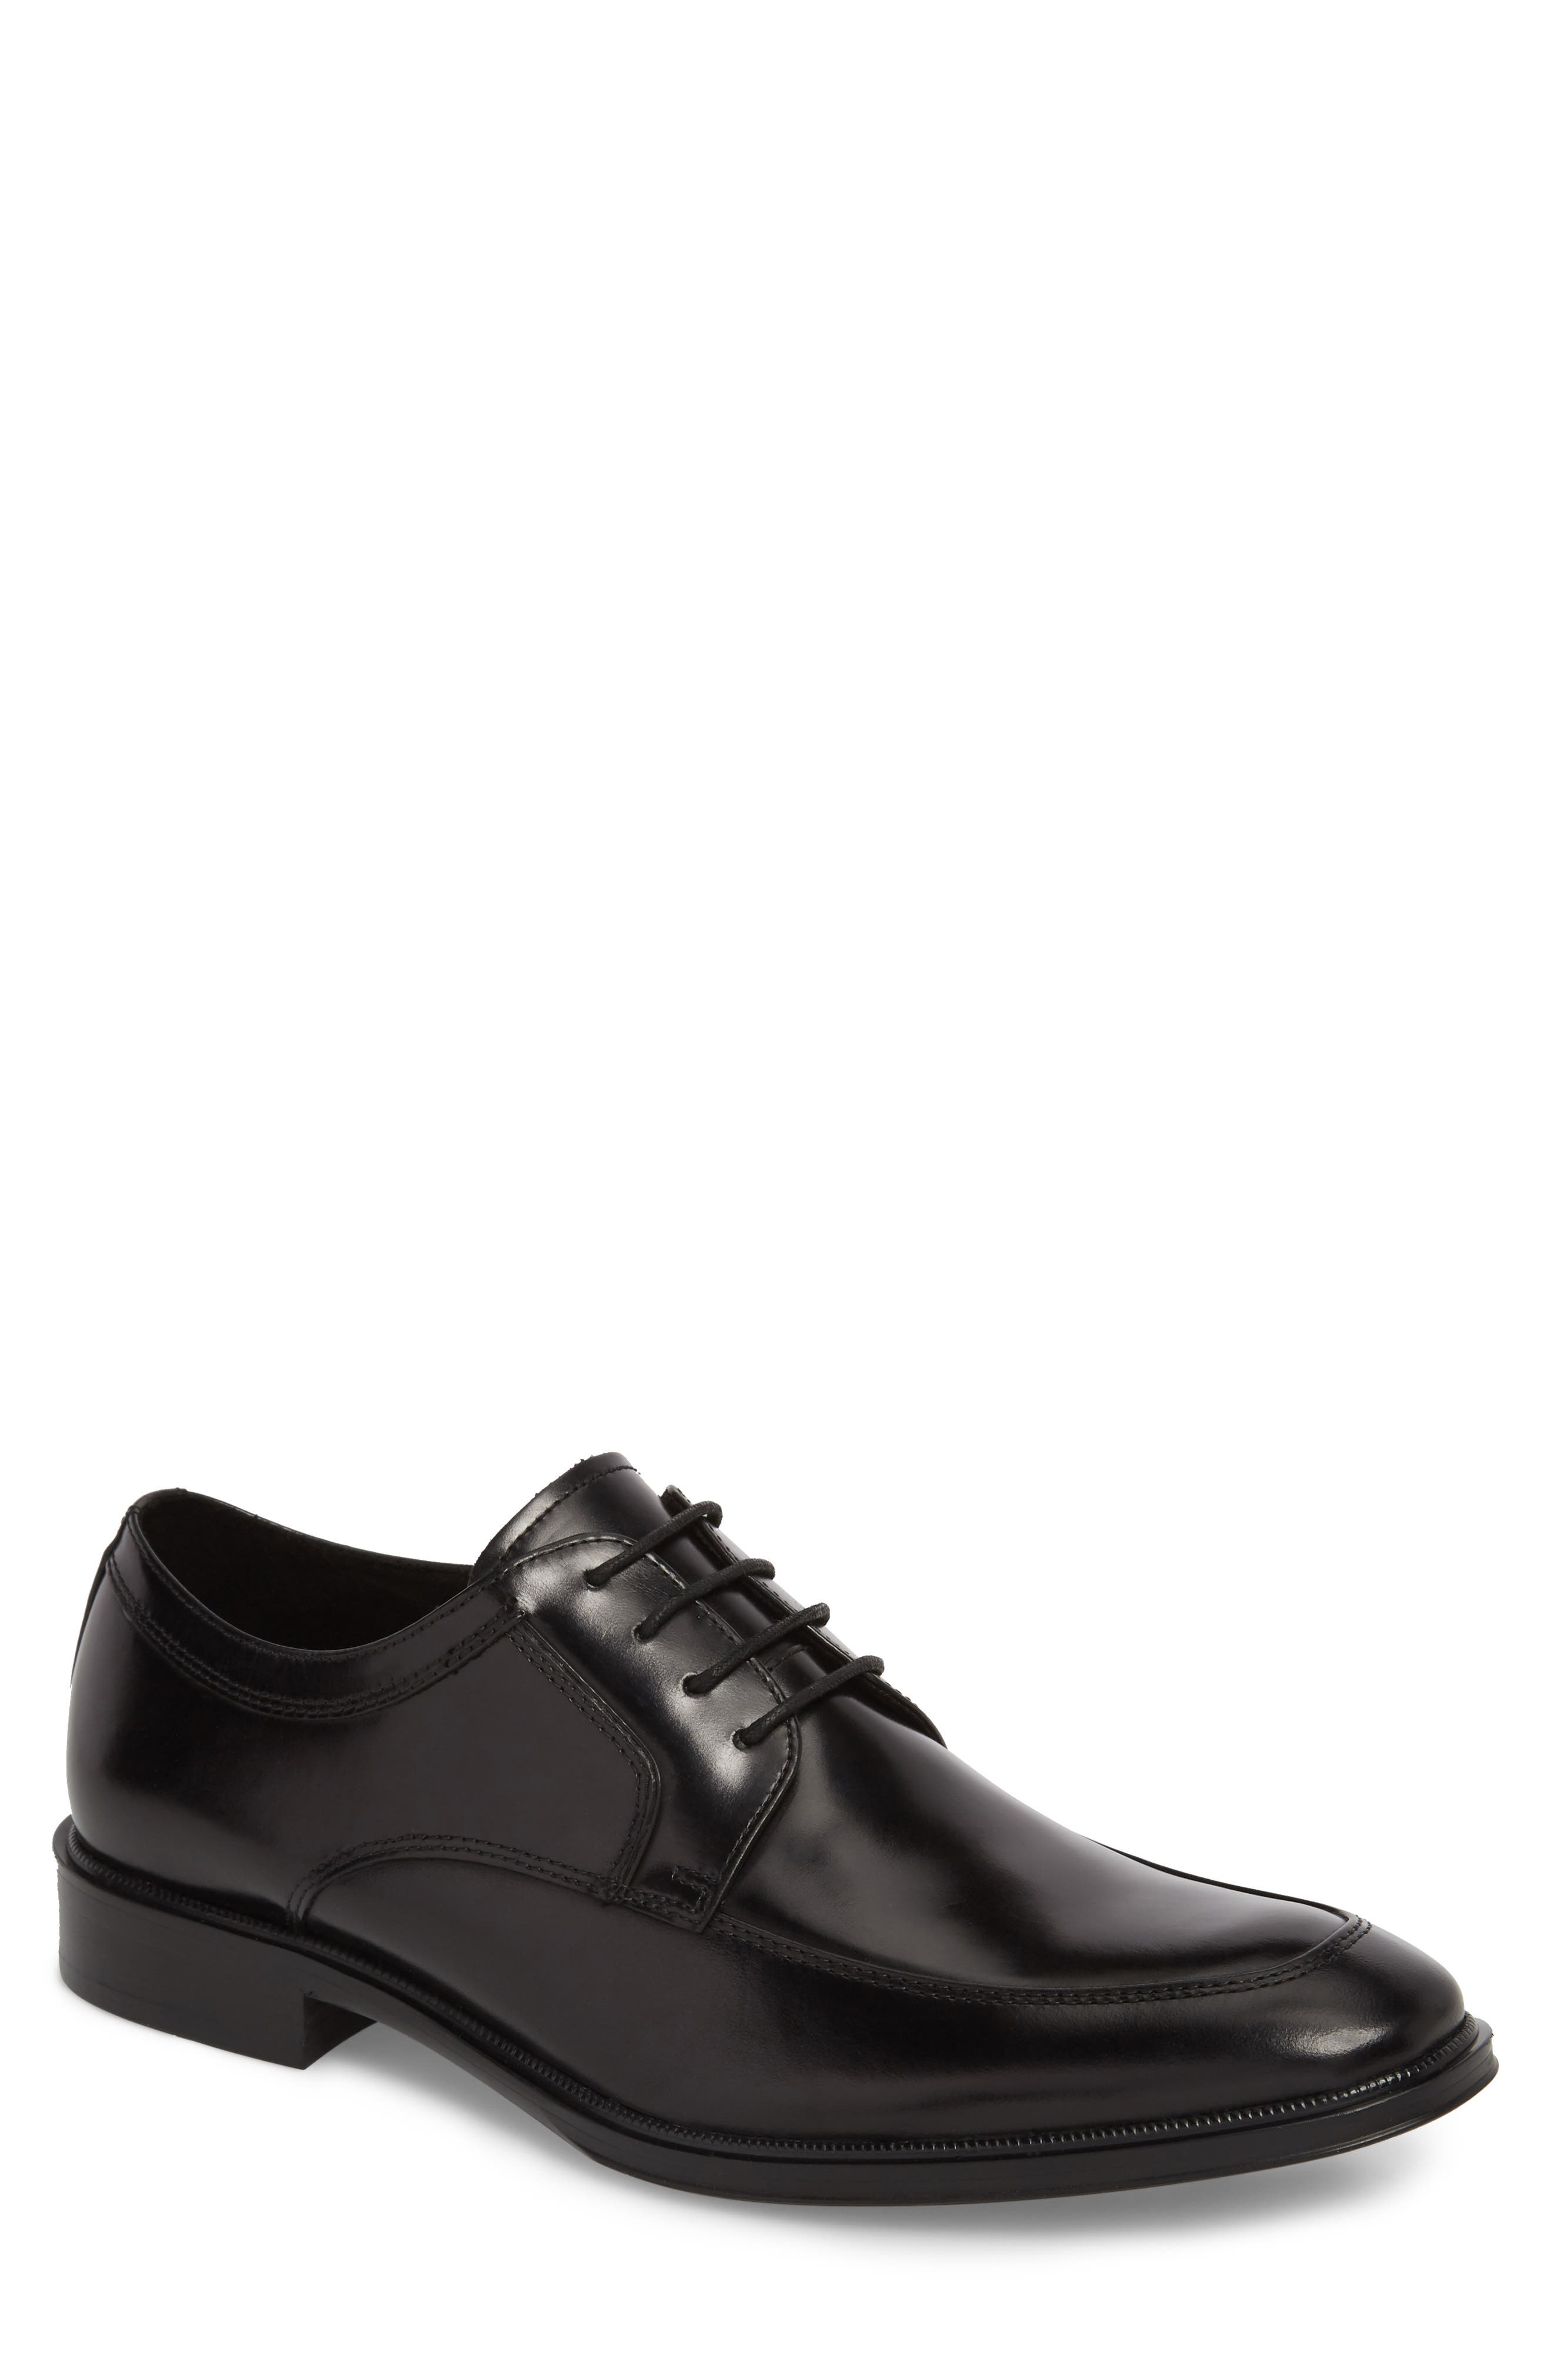 KENNETH COLE NEW YORK, Tully Apron Toe Derby, Main thumbnail 1, color, BLACK LEATHER